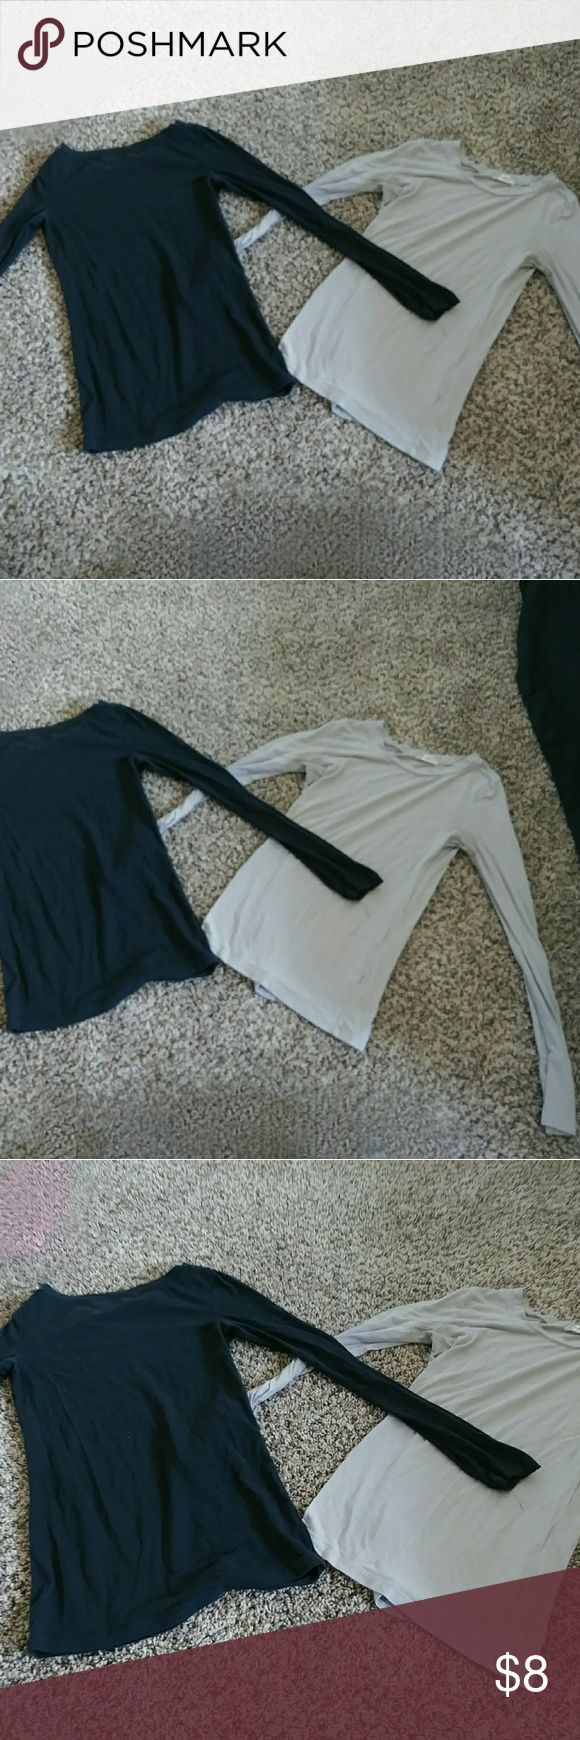 """2"" Basic Round Long sleeve Tops Colors: Navy Blue & Nude, Sizes: S (USED) Clean & 👍 Tops Tees - Long Sleeve"